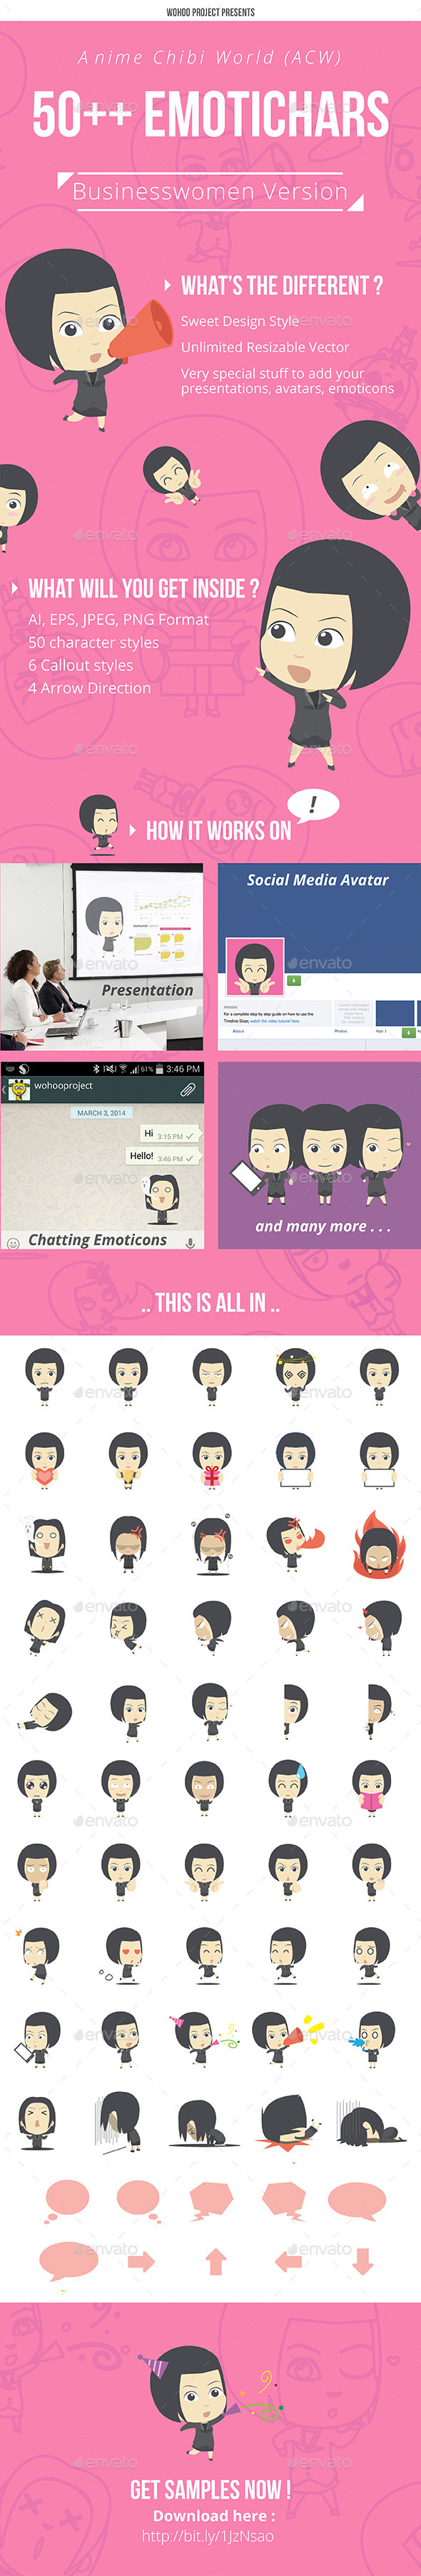 50+ Emotichars Businesswomen Version - People Characters